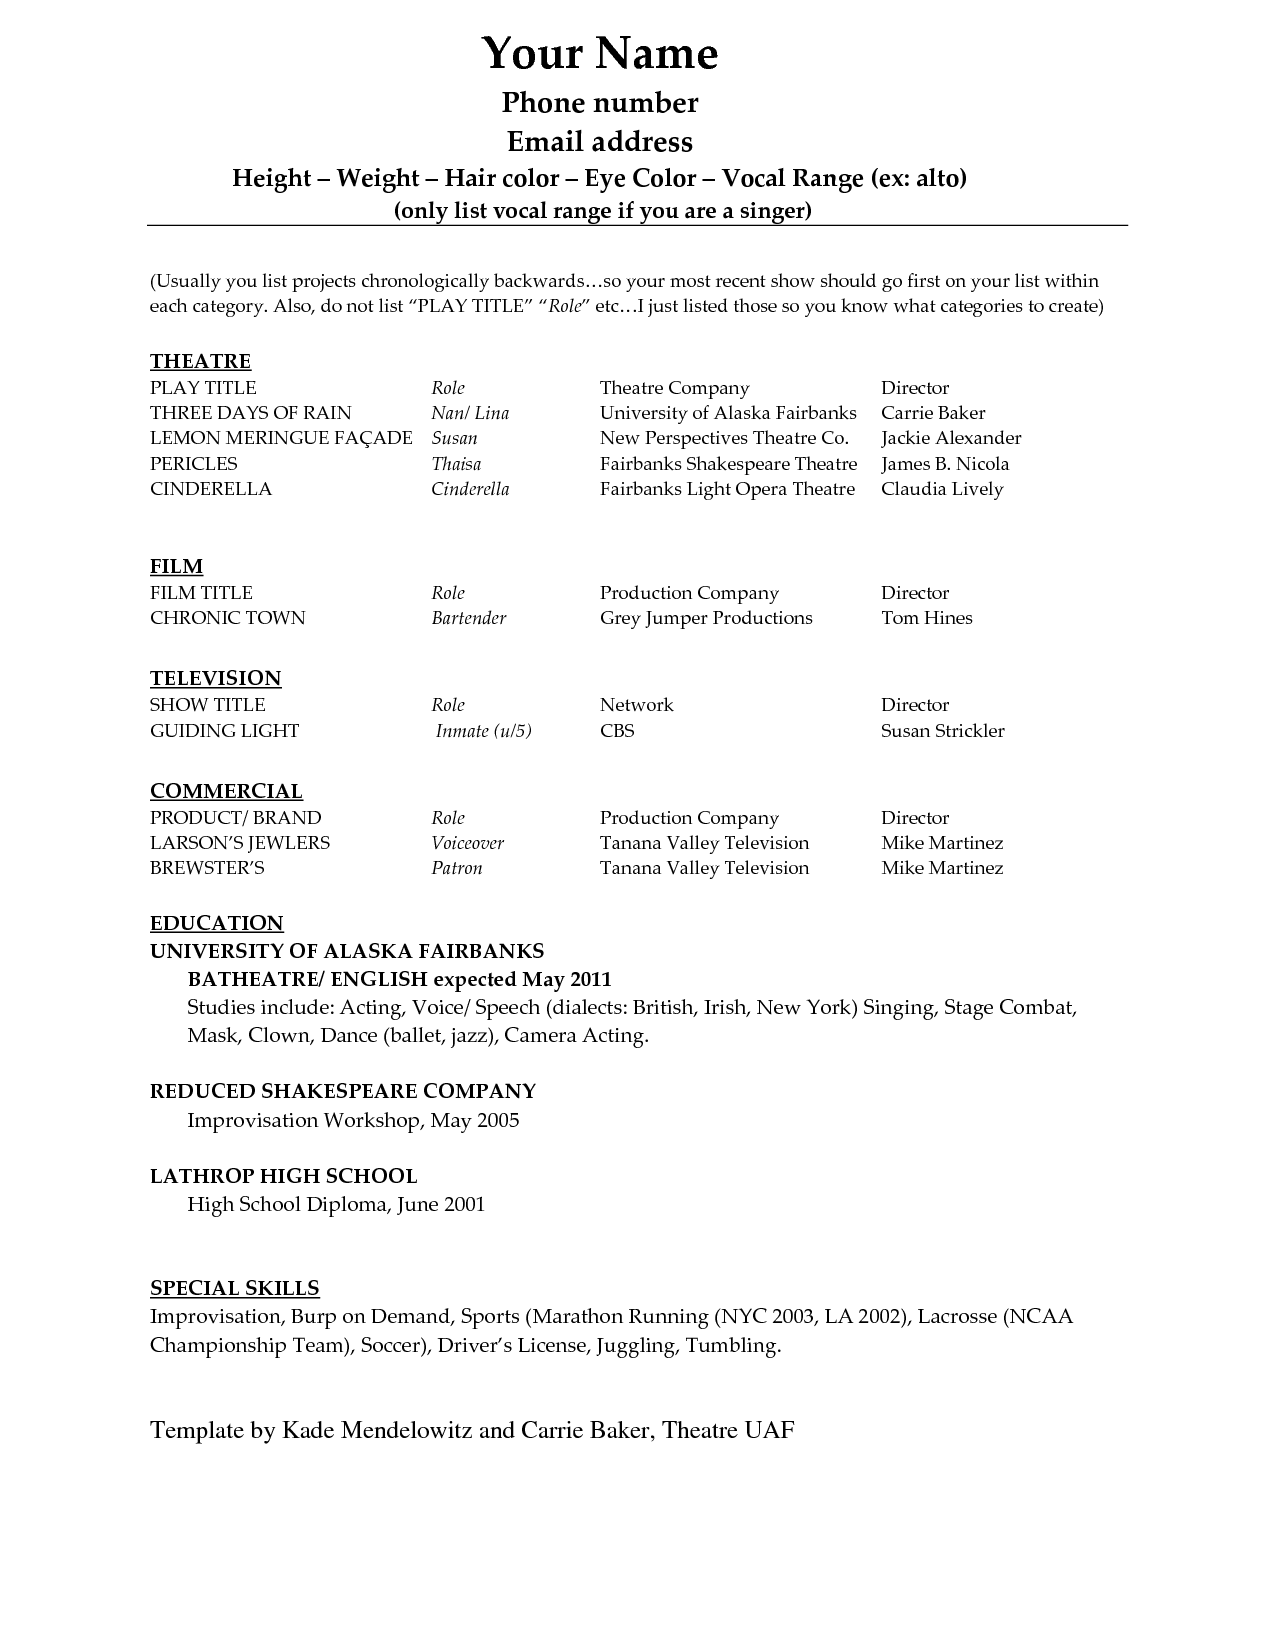 Copy Paste Resume Templates Acting Resume Template Download Free  Httpwwwresumecareer